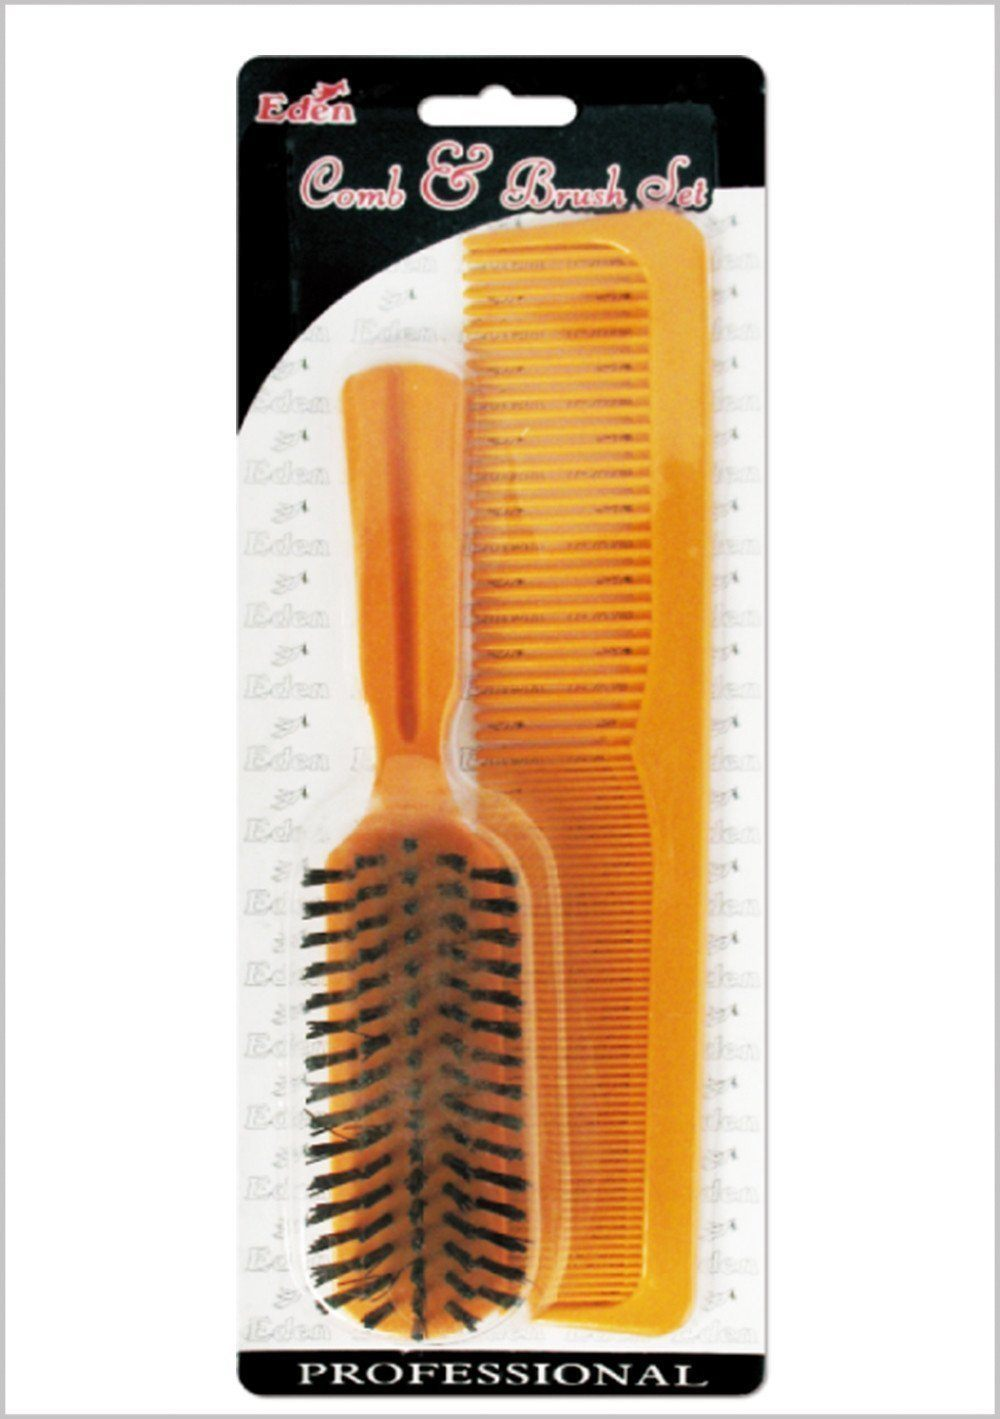 "#819 Eden 9"" Comb & Plastic Brush Set (12Pk)"